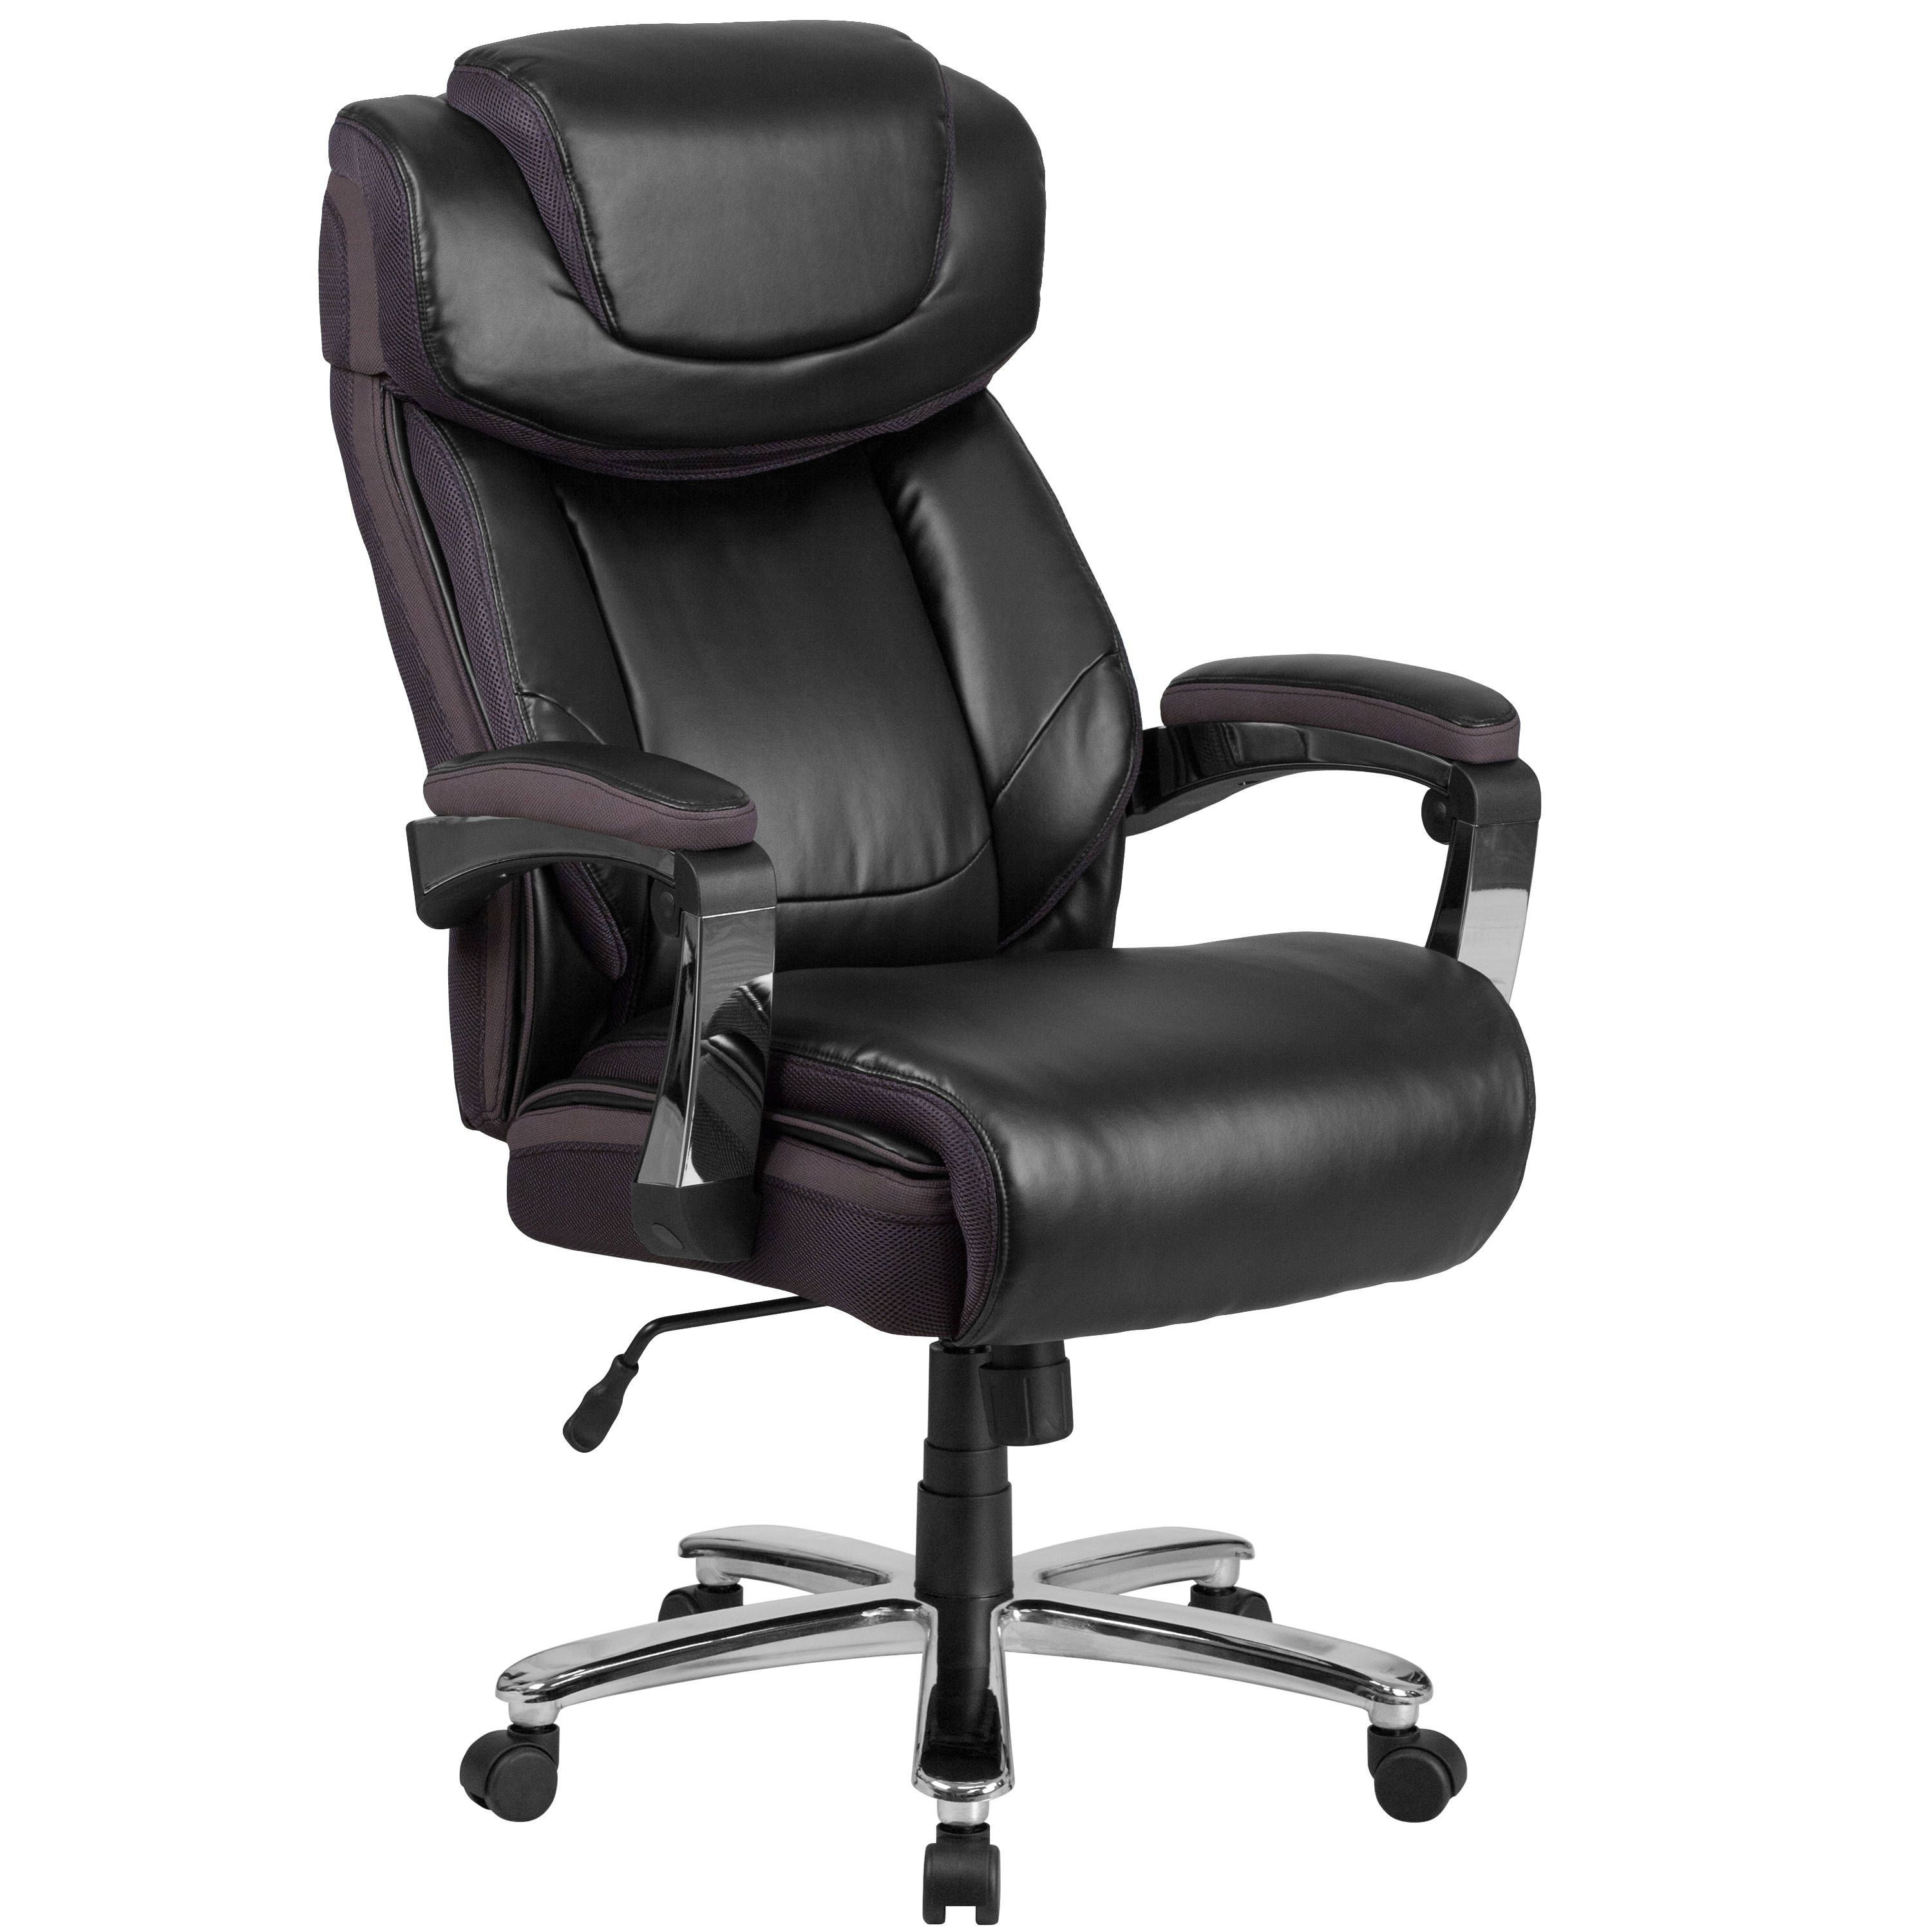 Executive big and tall black leather adjustable swivel office chair